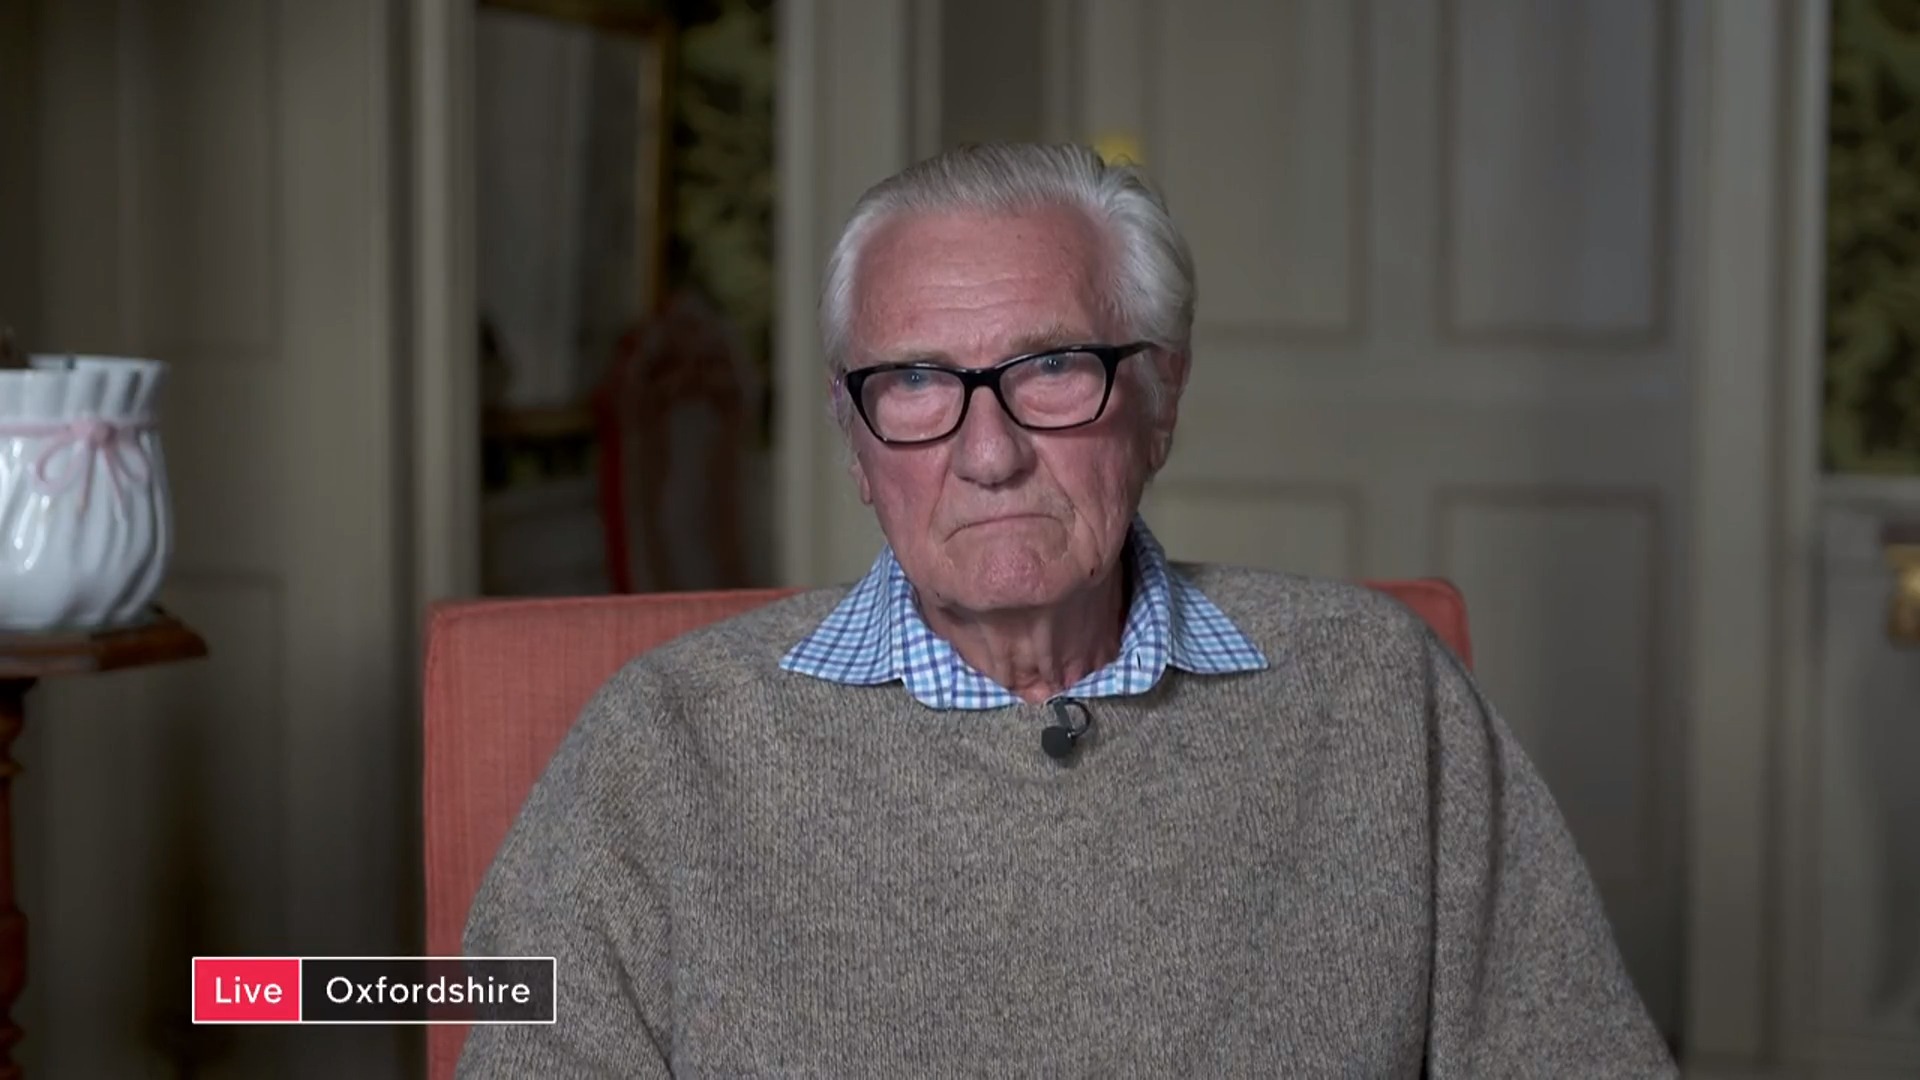 Lord Michael Heseltine: 'Chilling' similarities between 1930s and current political climate